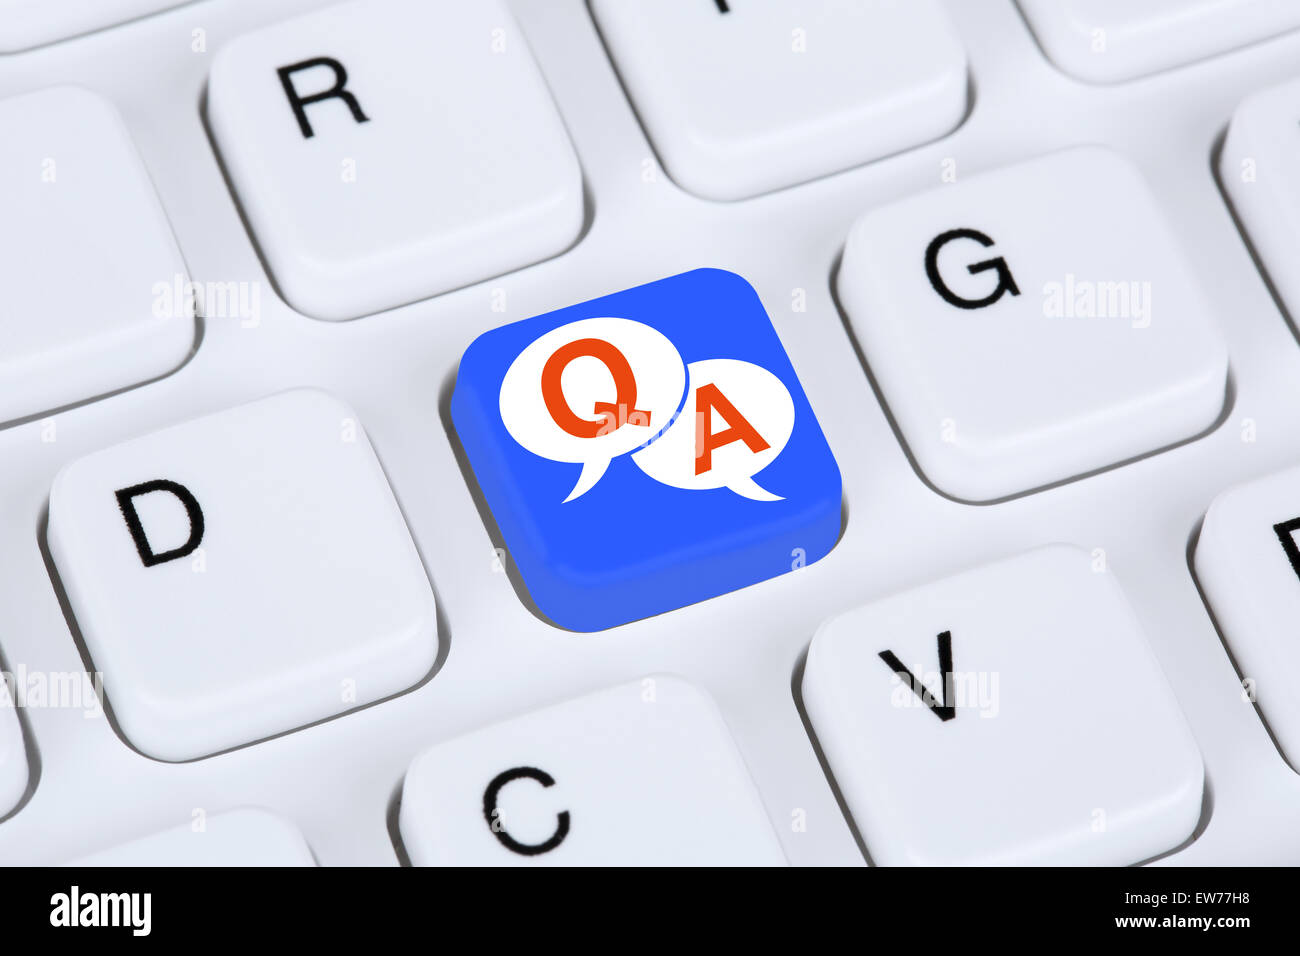 question and answer support online help contact customer service question and answer support online help contact customer service on the internet on computer keyboard